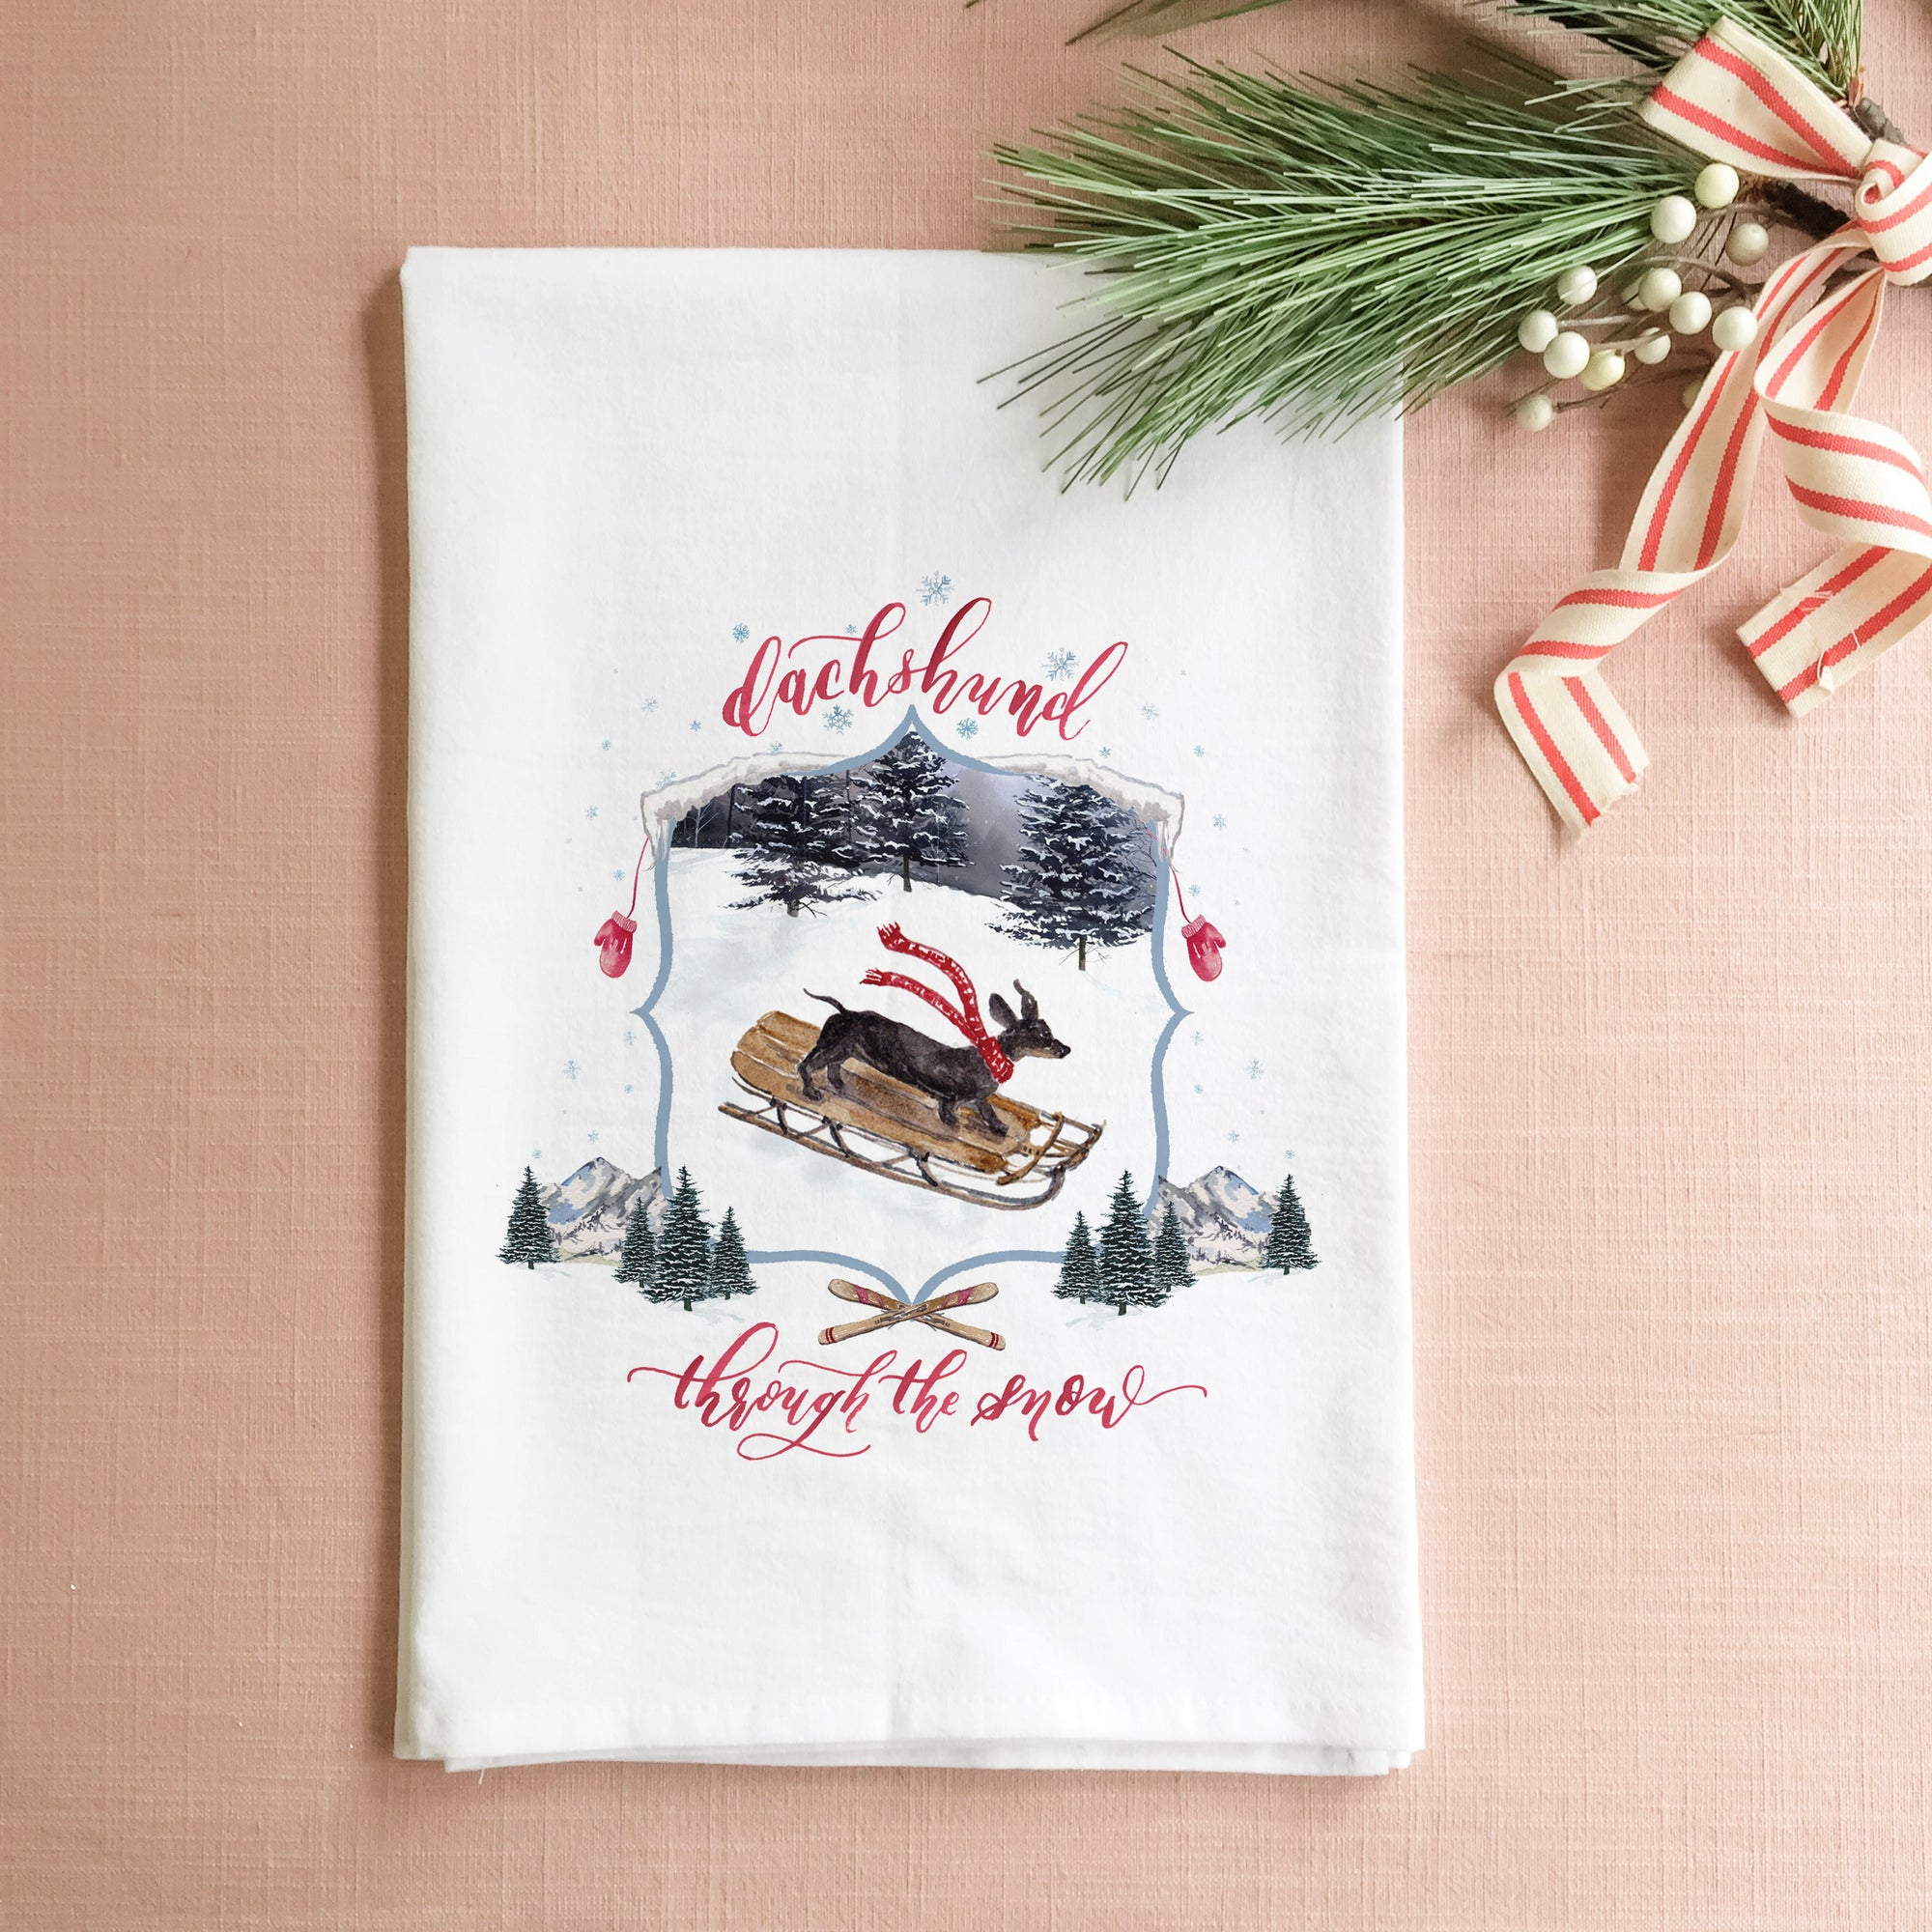 Dachshund Through the Snow Tea Towel